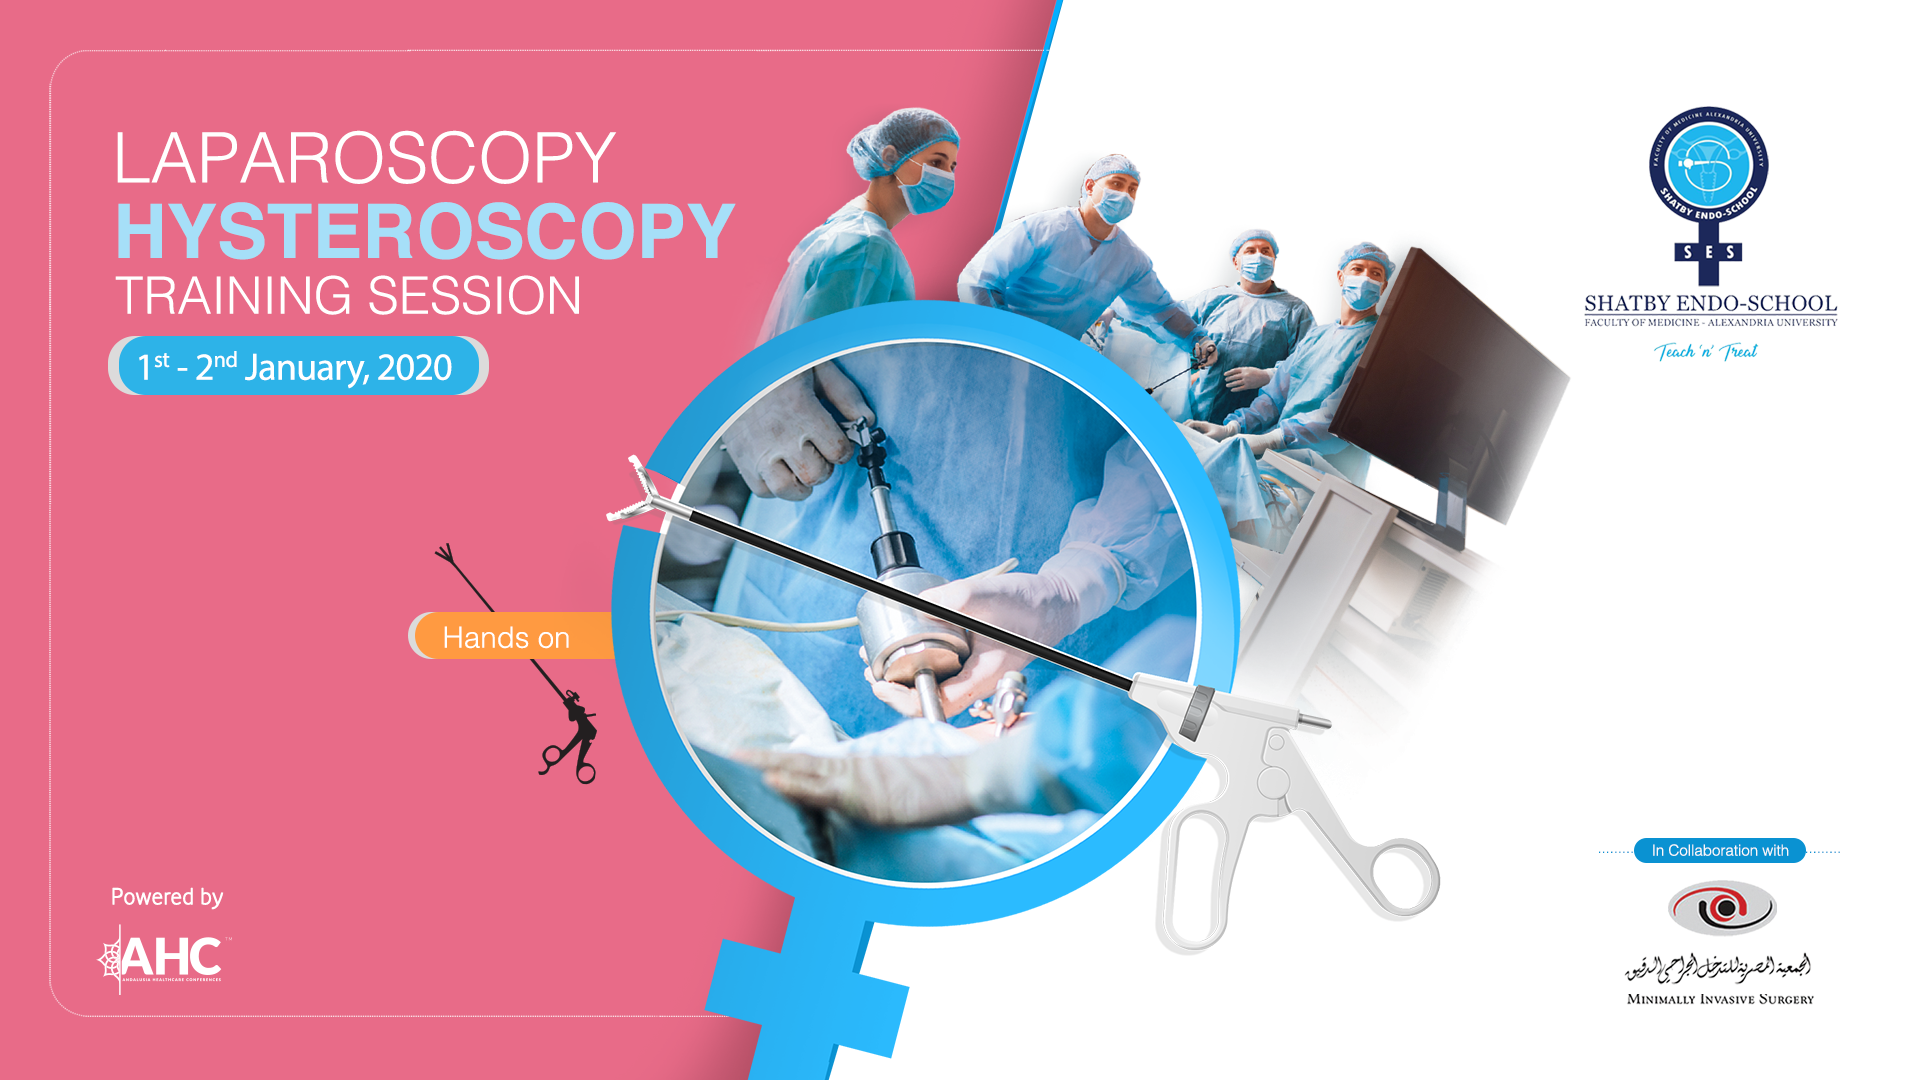 Basic Hysteroscopy & Laparoscopy Training session